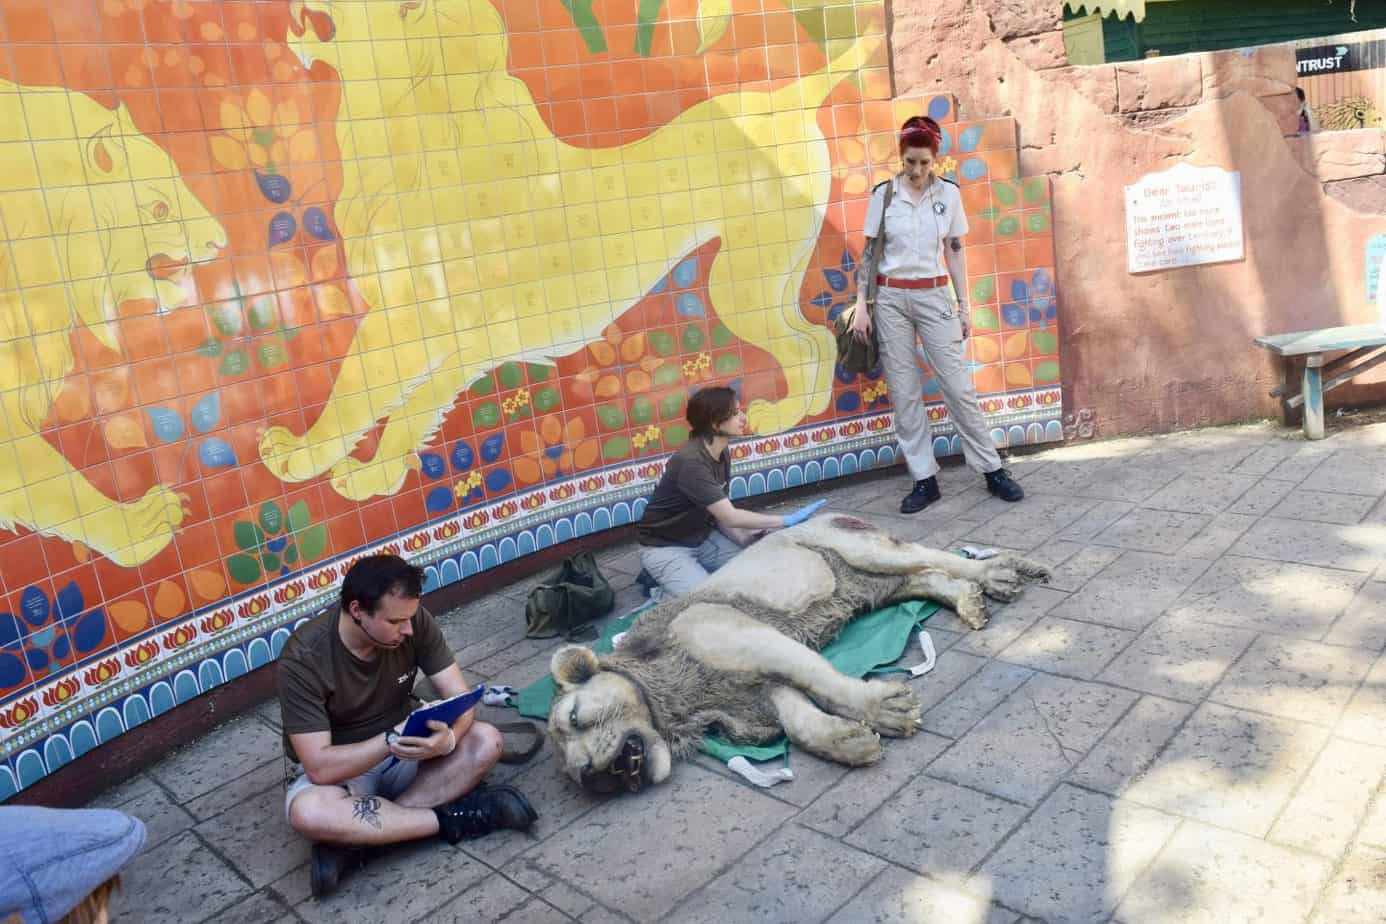 Live re - enactment of a Lion being cared for by zoo keepers